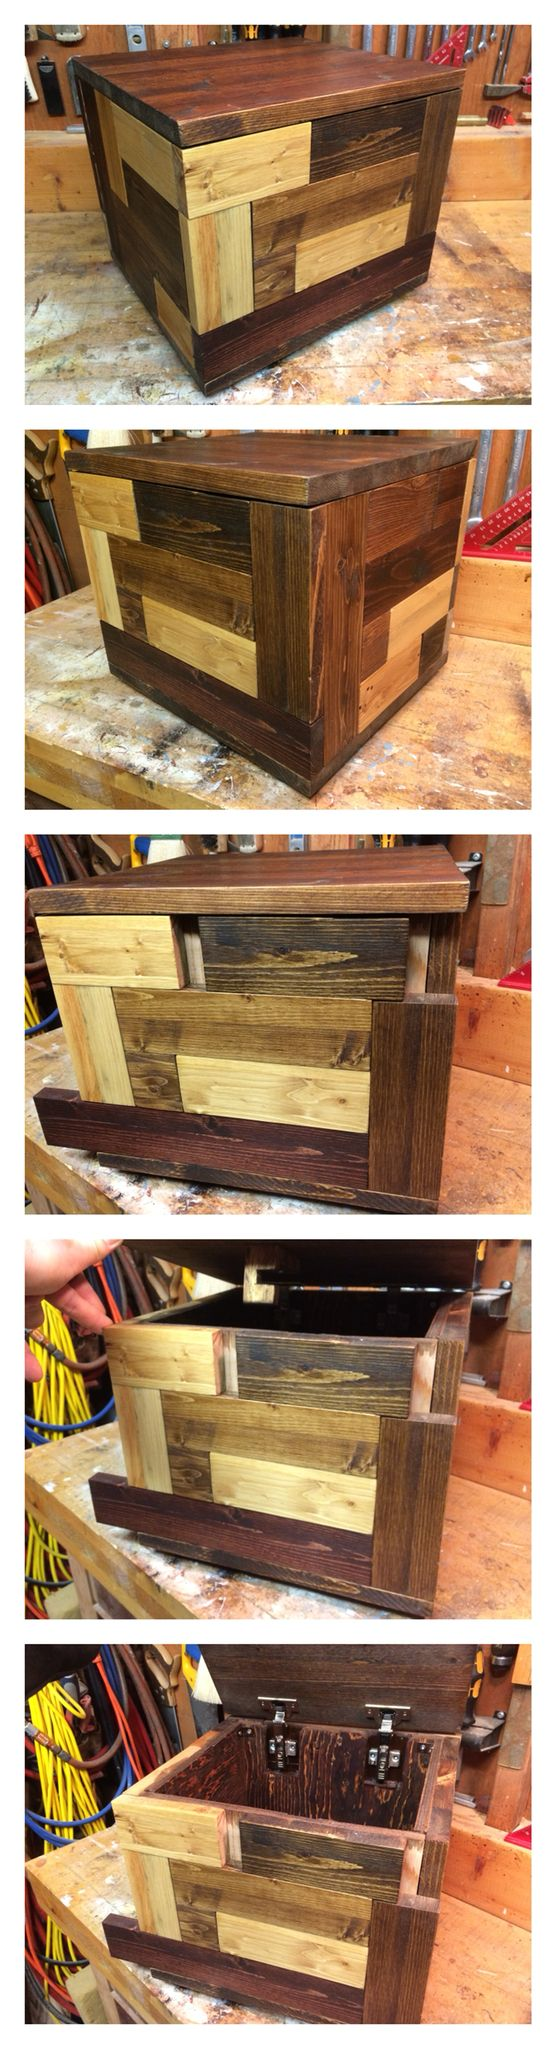 Wooden puzzle box I made over the Christmas holidays from reused wood pieces and cabinet hinges. Lock mechanism and joints are all 100% wood.